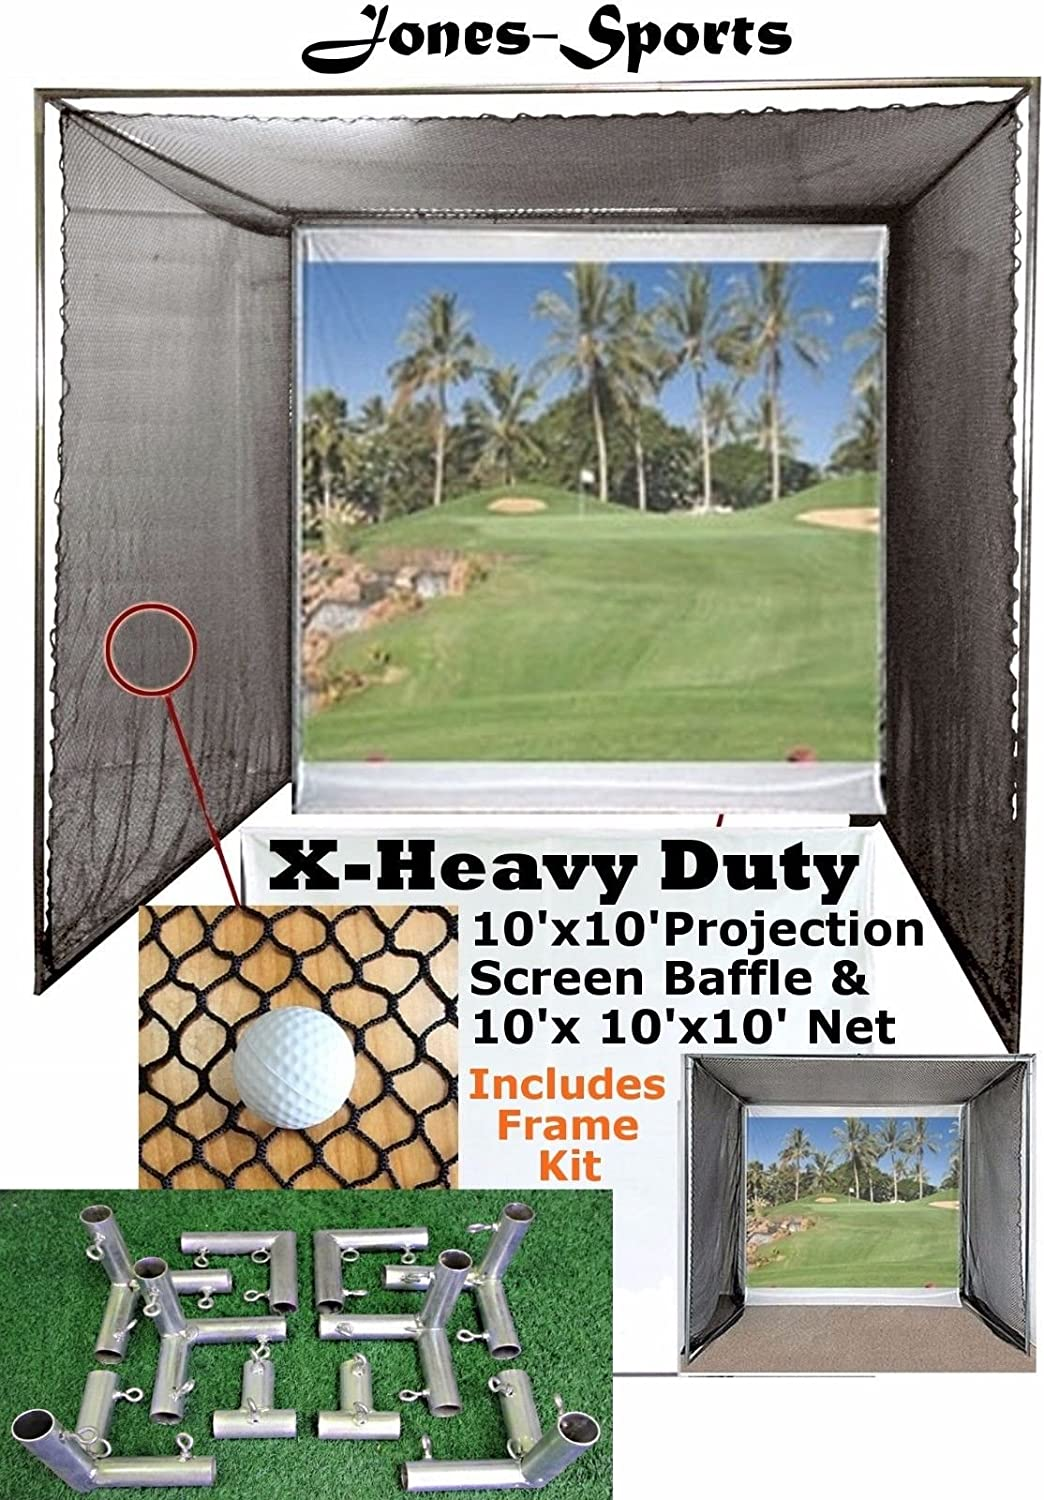 Jones Sports 10 x10 Golf Impact Projection Screen Baffle 10 x10 x10 Net with or Without Frame kit